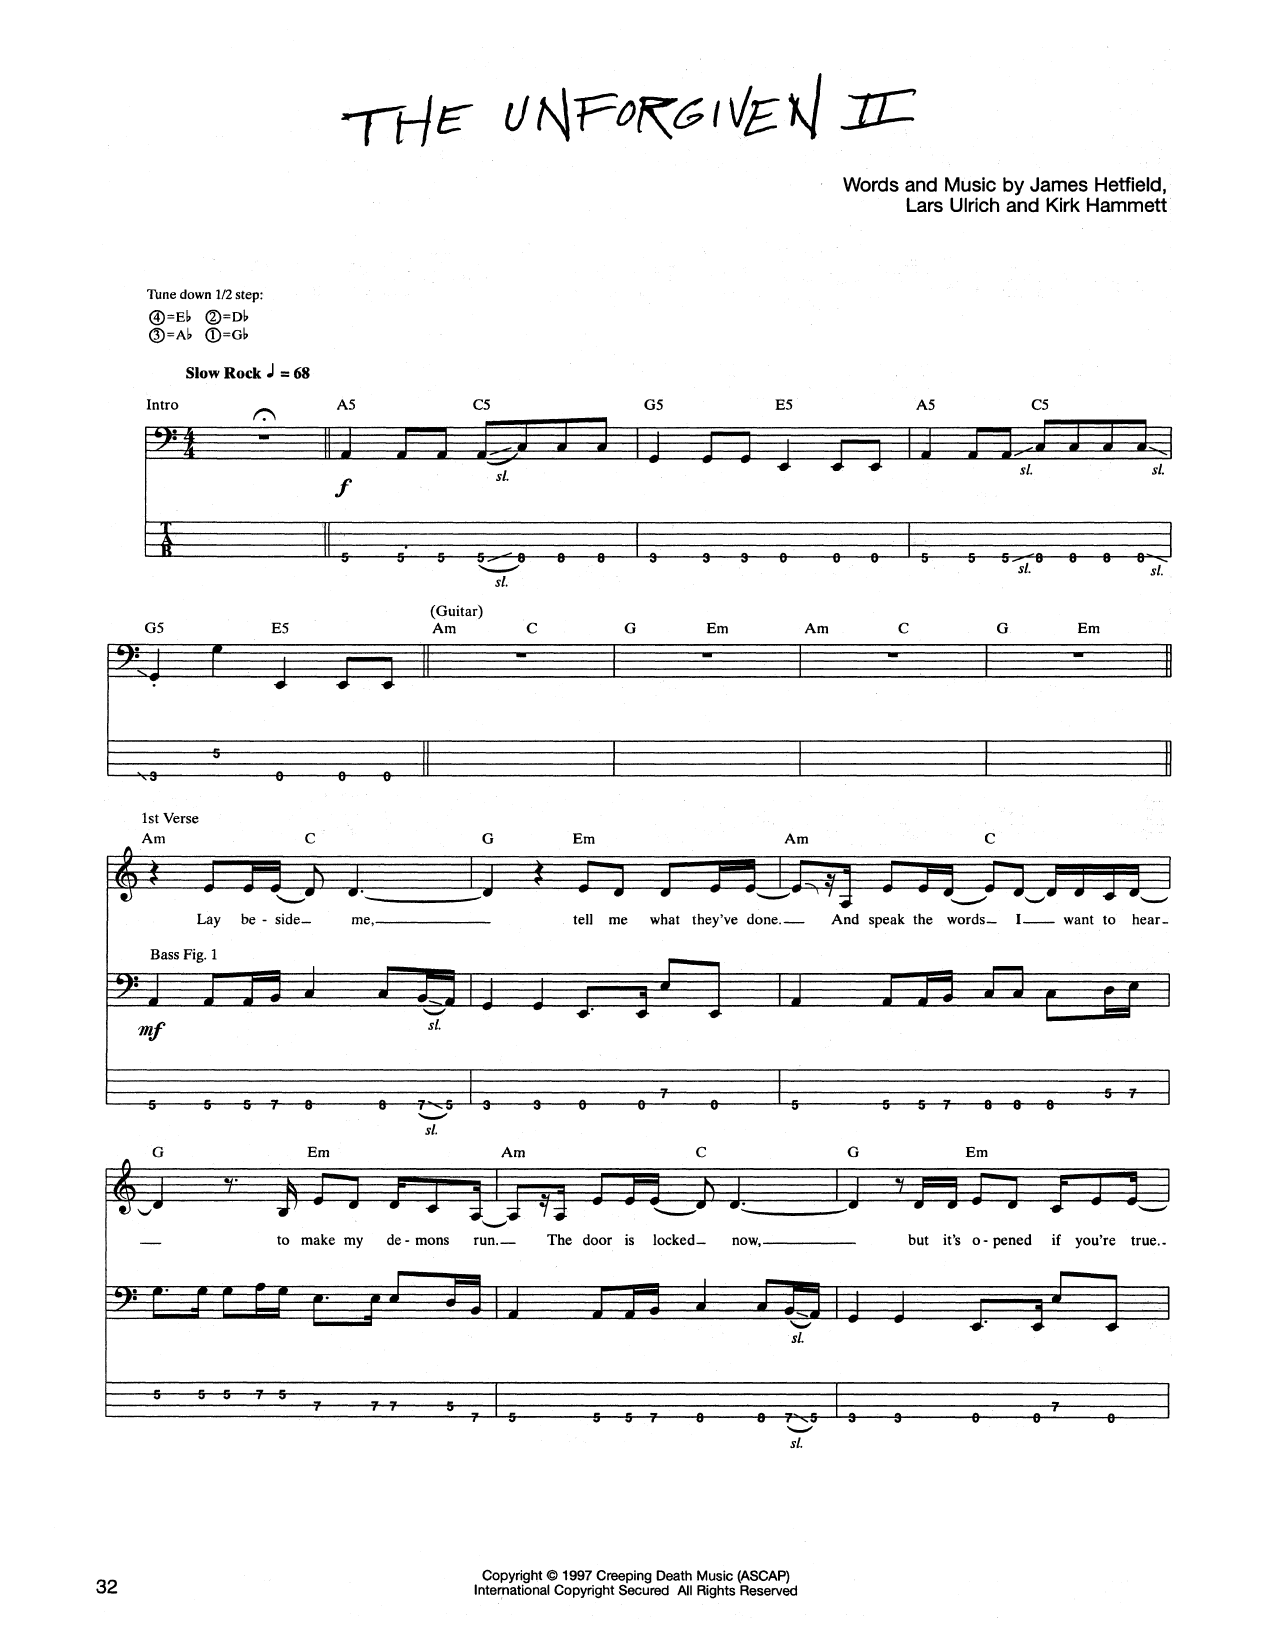 Tablature guitare The Unforgiven II de Metallica - Tablature Basse